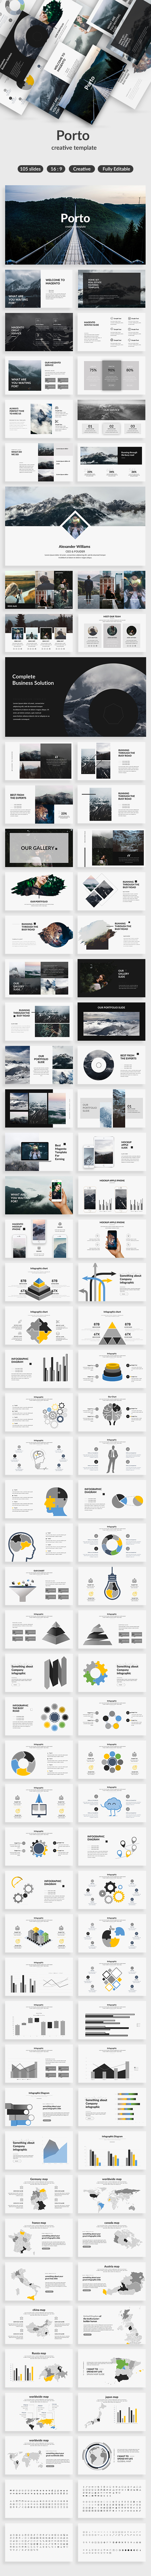 GraphicRiver Porto Creative Google Slide Template 20673736